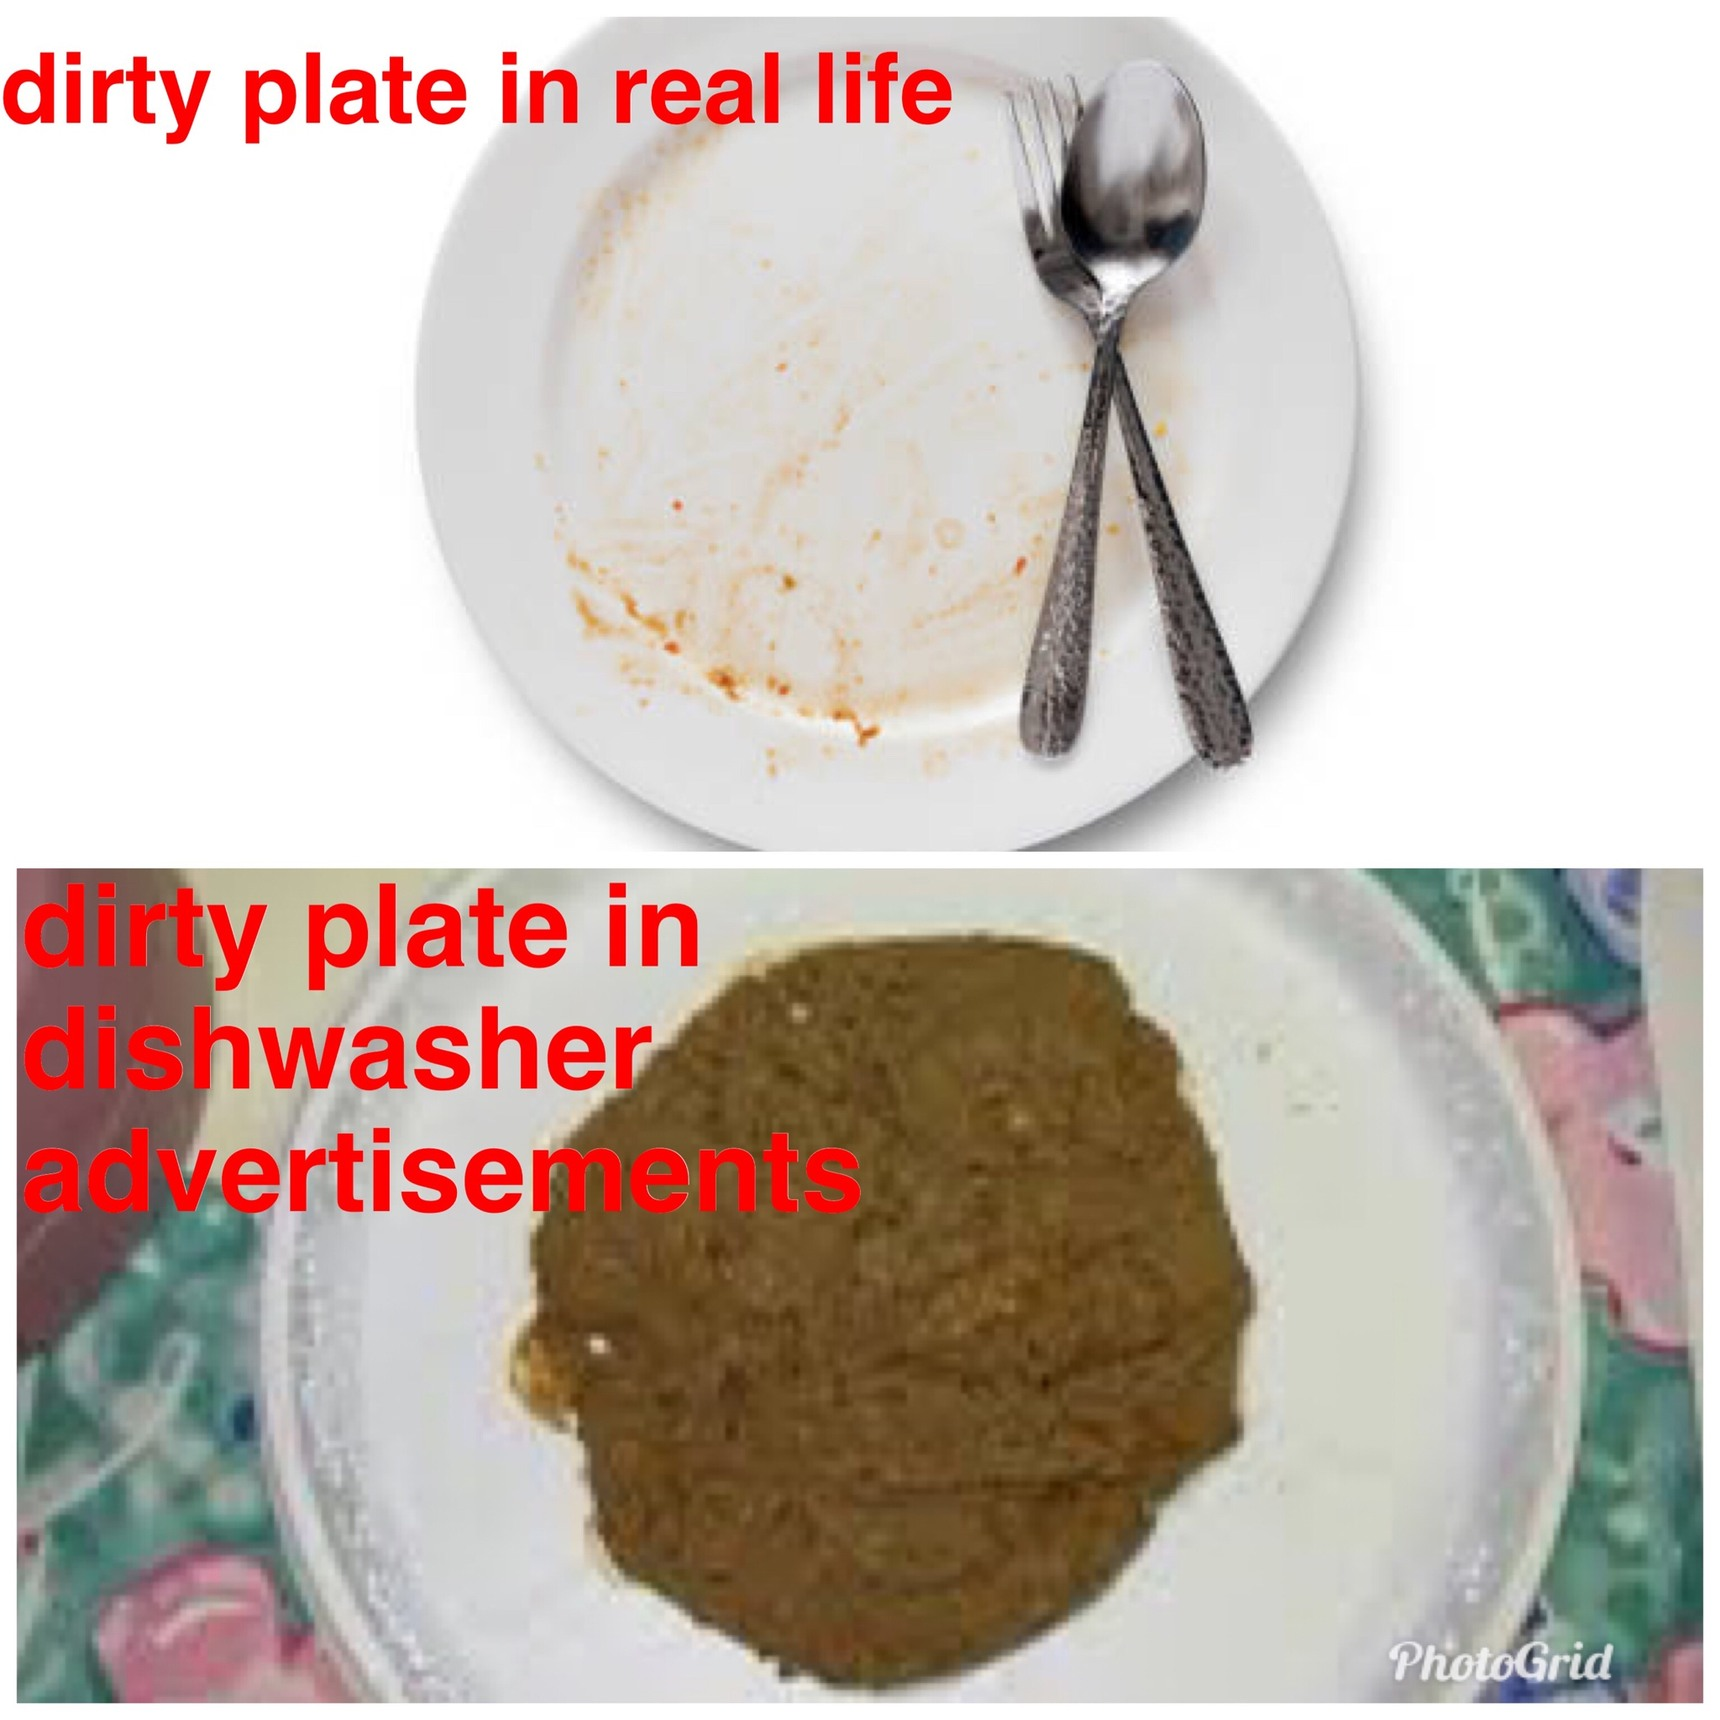 dishwasher and sh** - meme